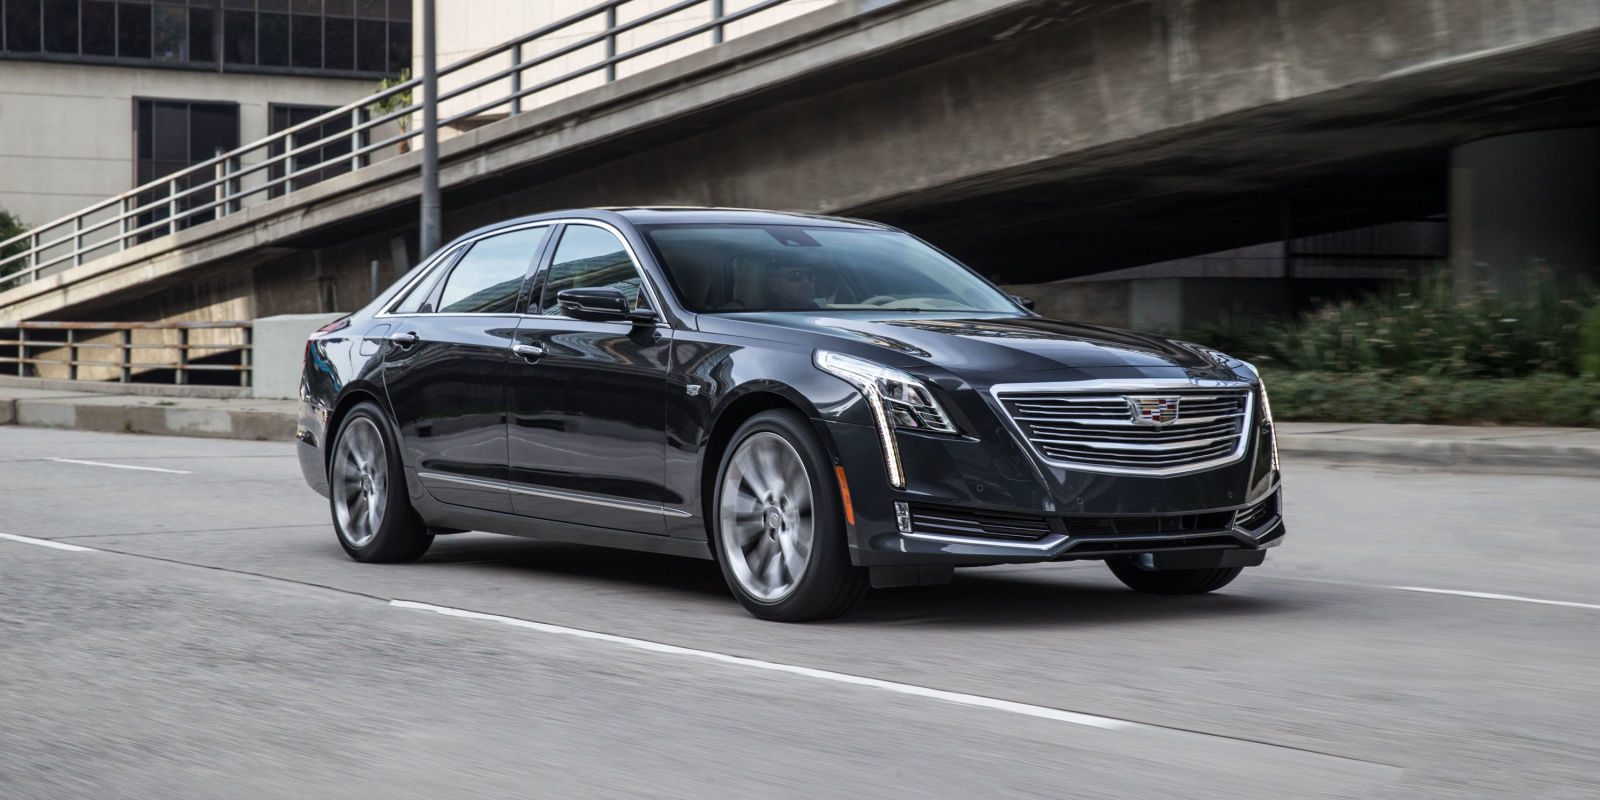 The 2017 Cadillac CT6 Doesn't Want to be a BMW